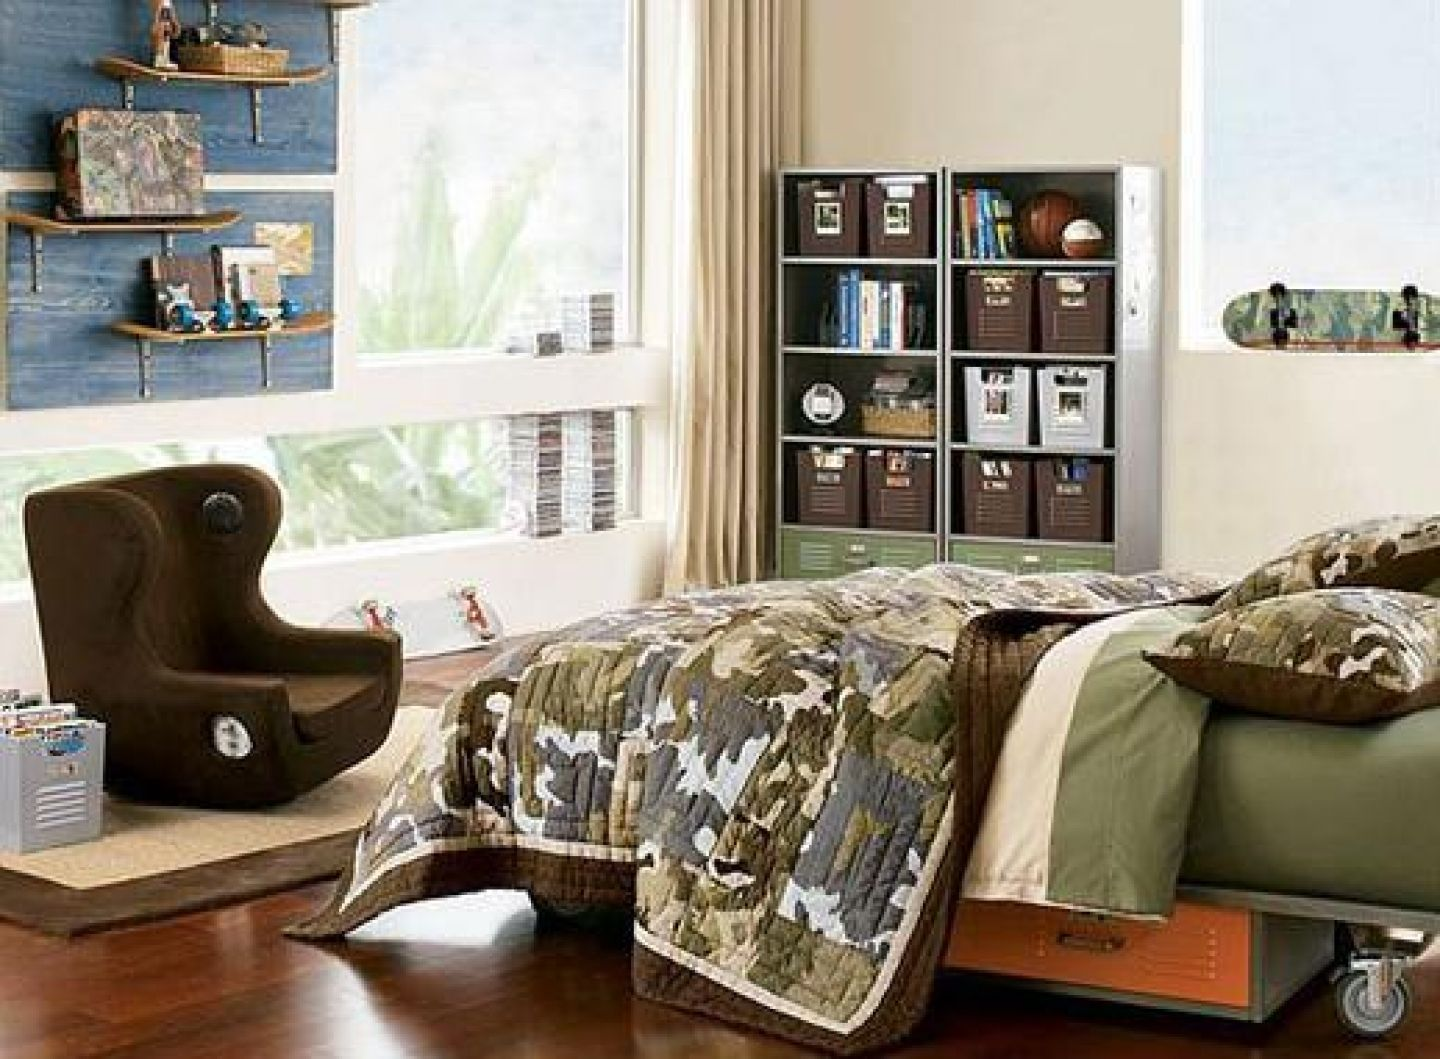 Bedroom design for teenagers boys - Teenageboys Bedroom Ideas Bedroom Ideas For Teenage Boys Kids Bedroom Decorating Ideas